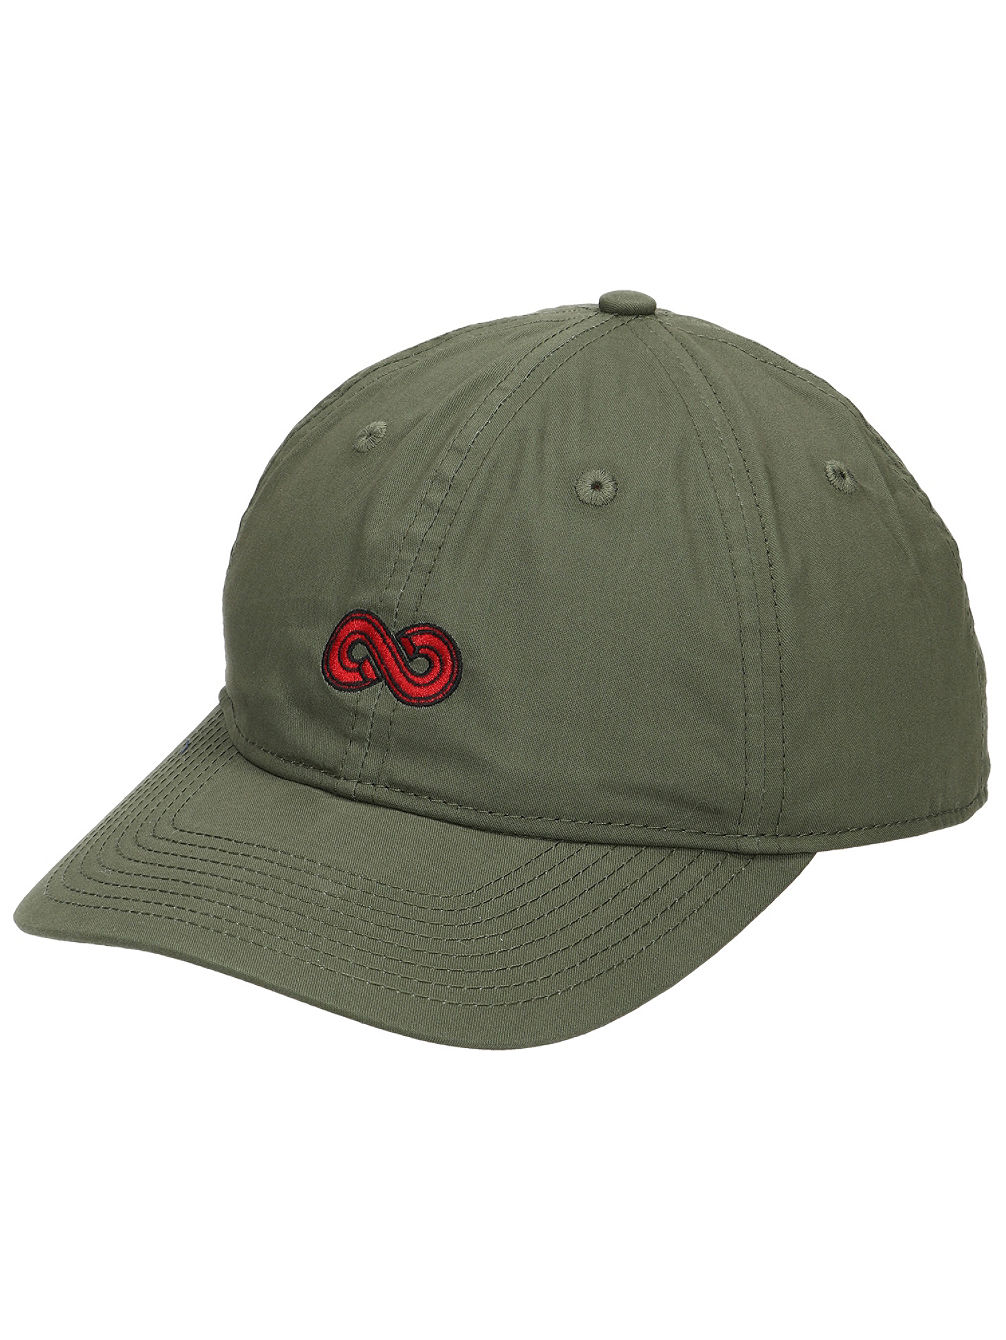 a8807278c28 Buy Element Fluky Dad Cap online at blue-tomato.com